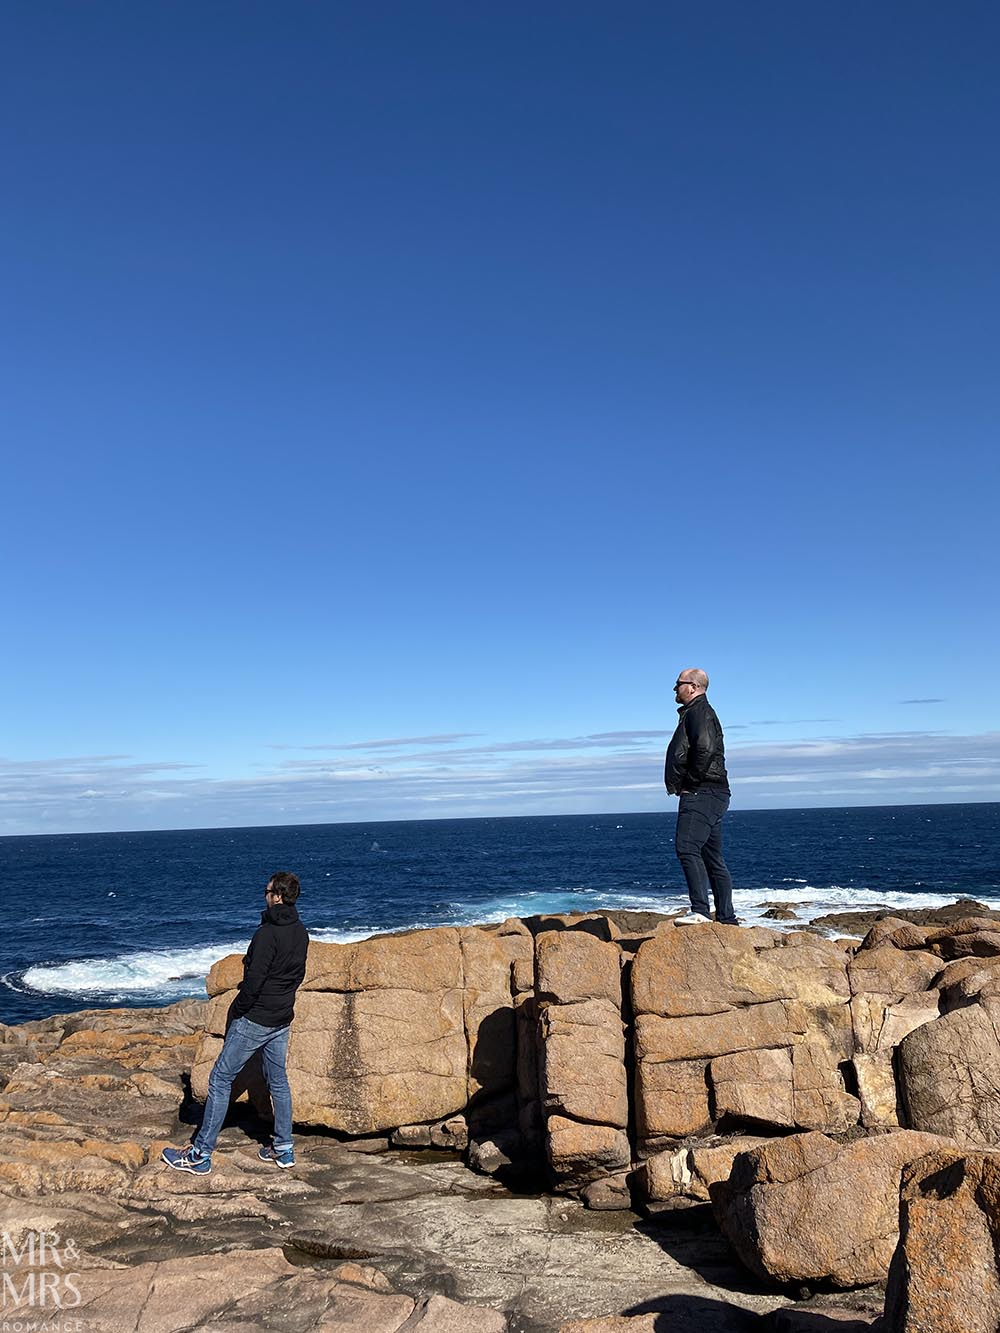 Whale Watching at Boat Harbour, Port Stephens NSW